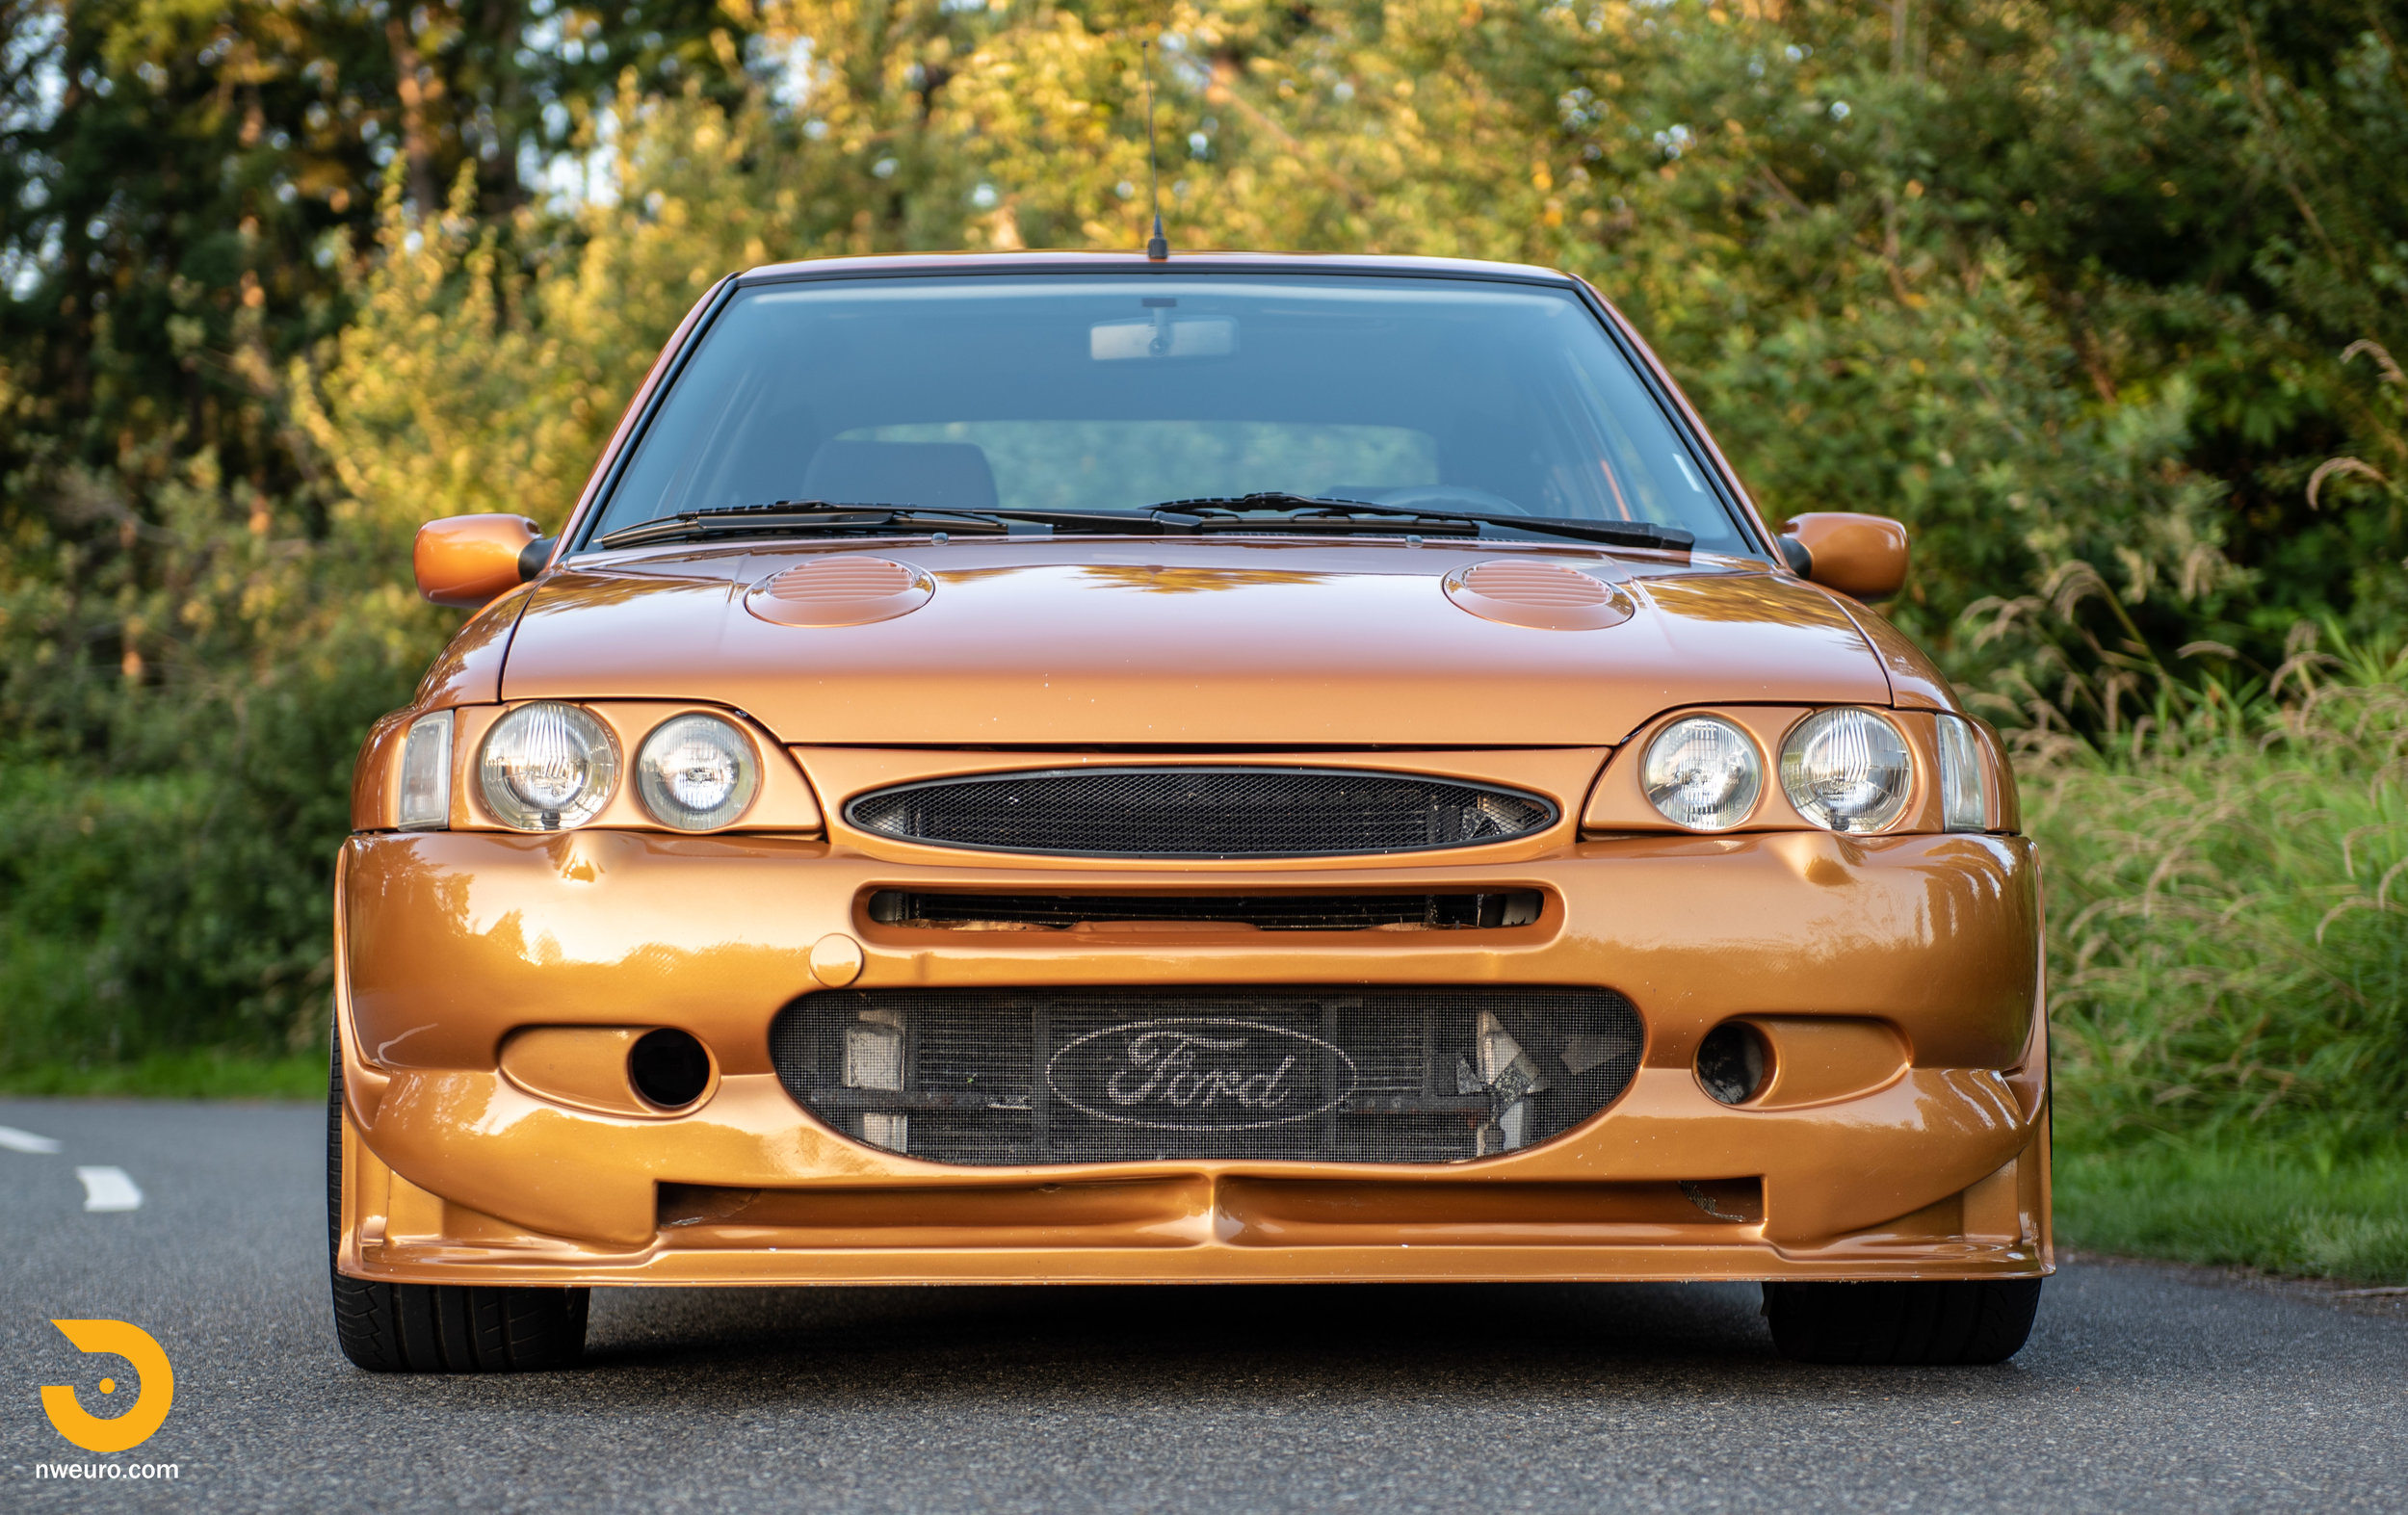 1995 Ford Escort Cosworth RS Gold-11.jpg